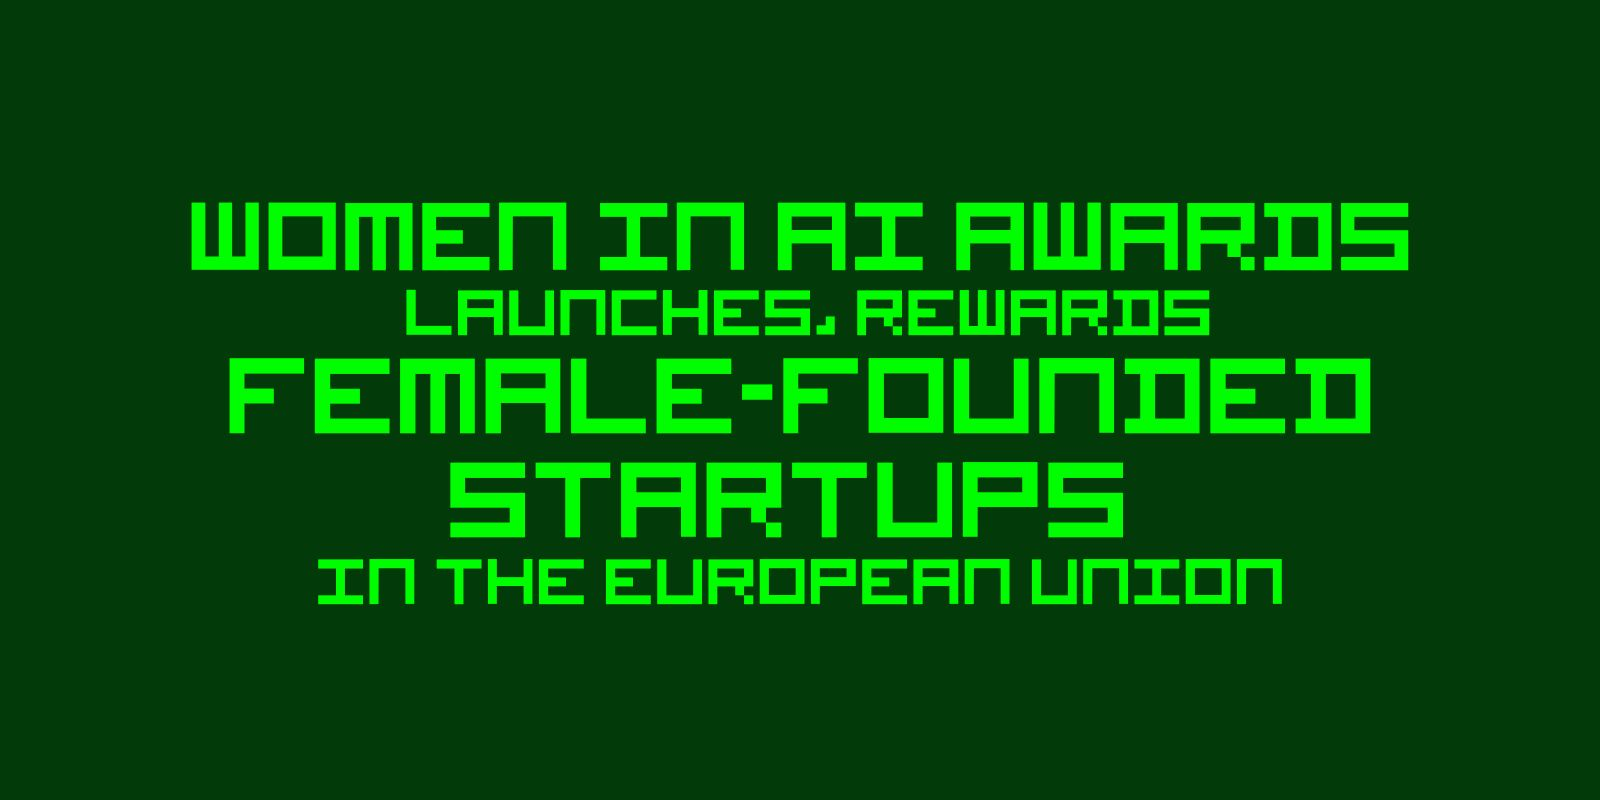 /2nd-women-in-ai-awards-launches-rewards-female-founded-eu-startups-c1aq3udp feature image